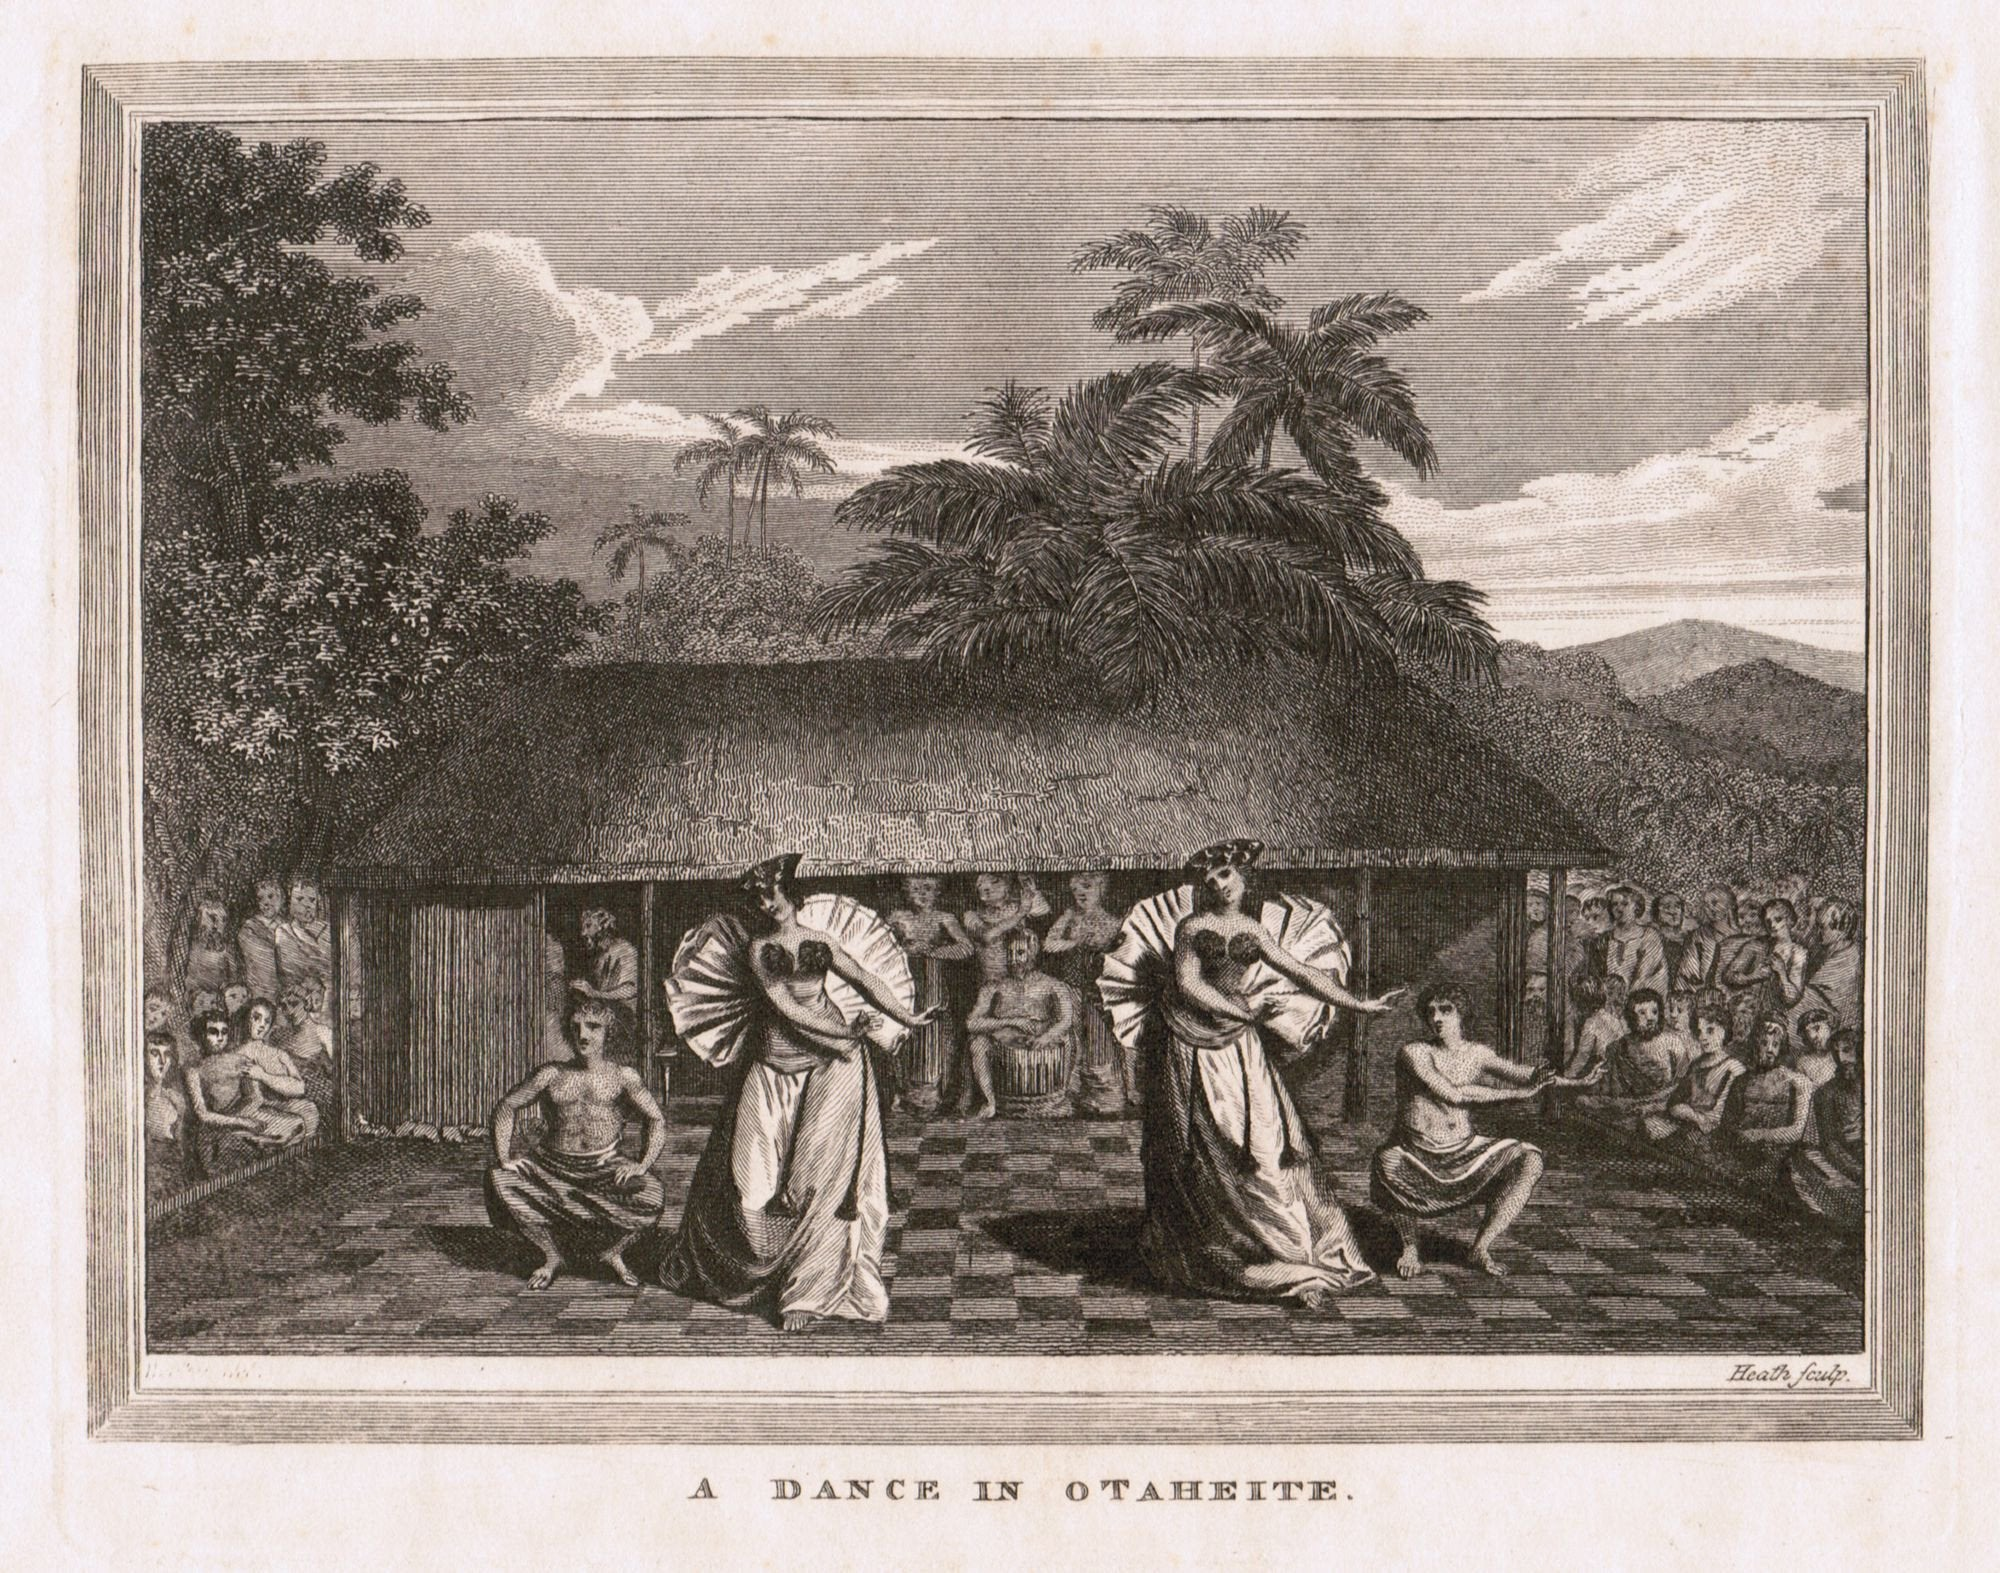 18Th Century Lithograph Of Hawaii - Product